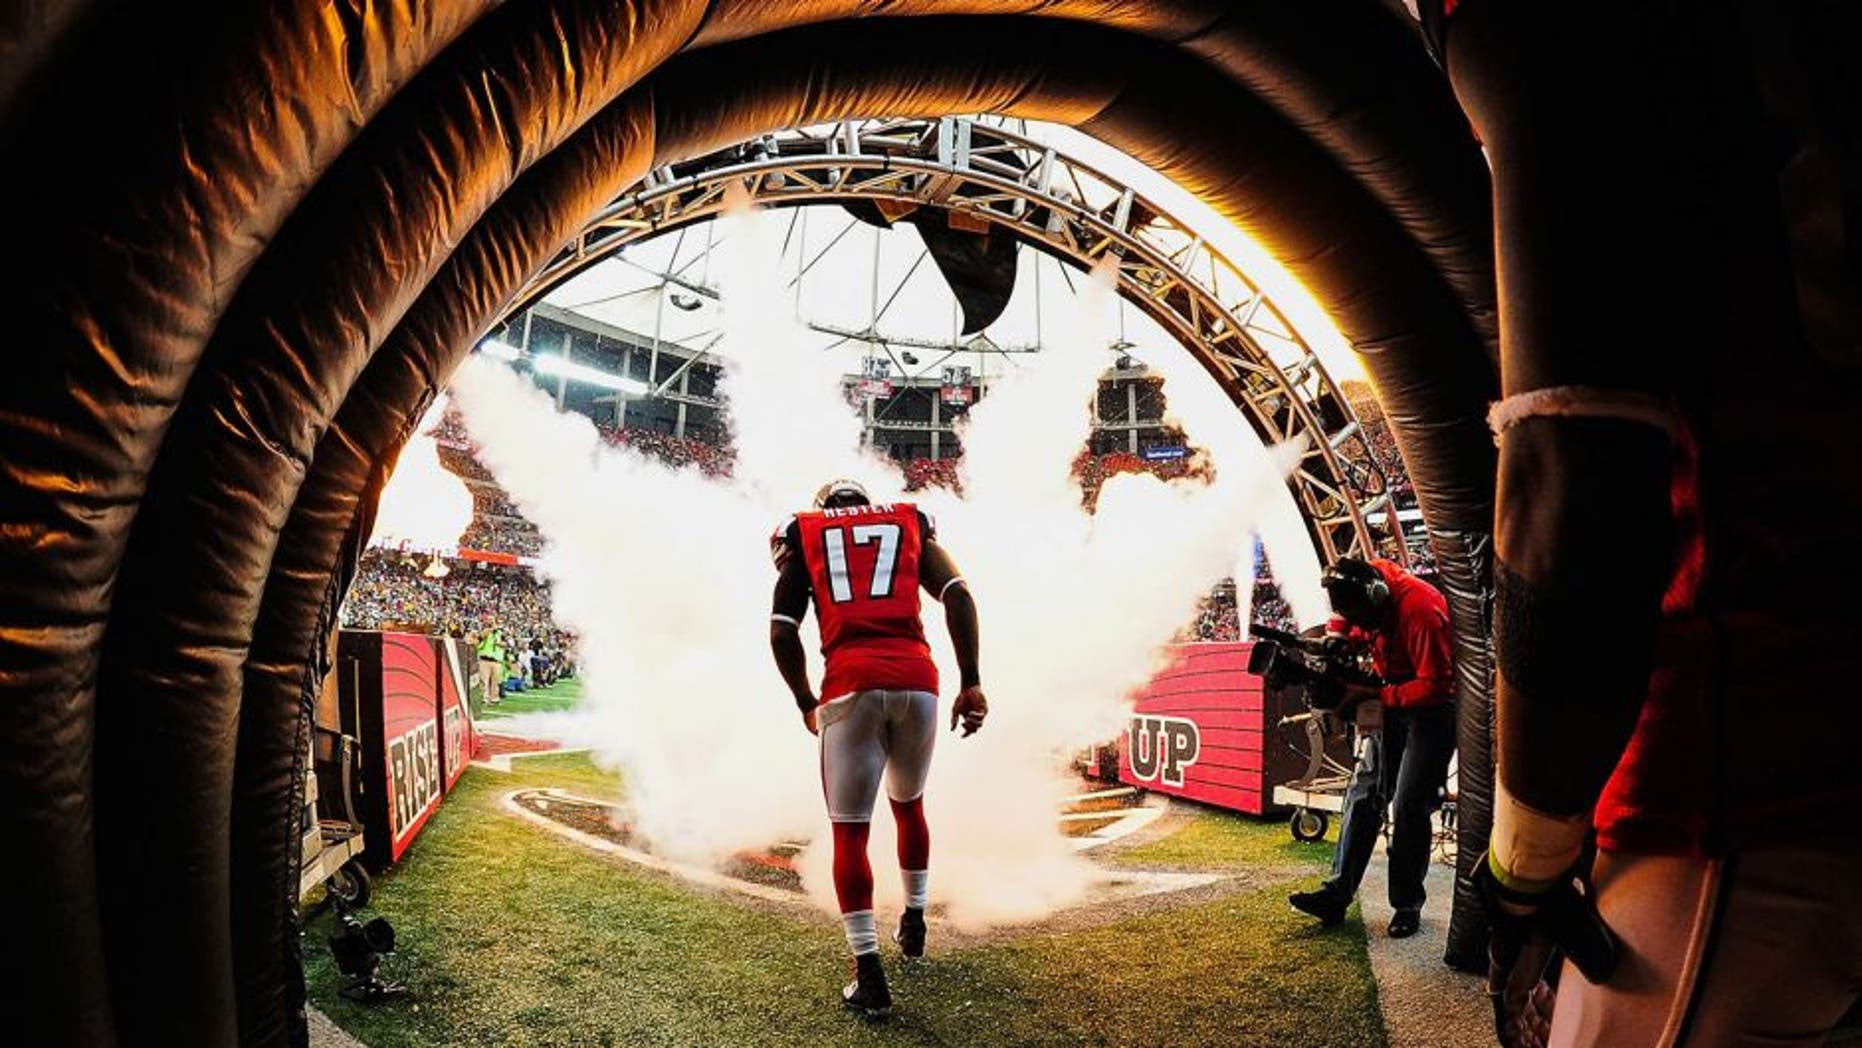 ATLANTA, GA - DECEMBER 14: Devin Hester #17 of the Atlanta Falcons is introduced prior to the game against the Pittsburgh Steelers at the Georgia Dome on December 14, 2014 in Atlanta, Georgia. (Photo by Scott Cunningham/Getty Images)